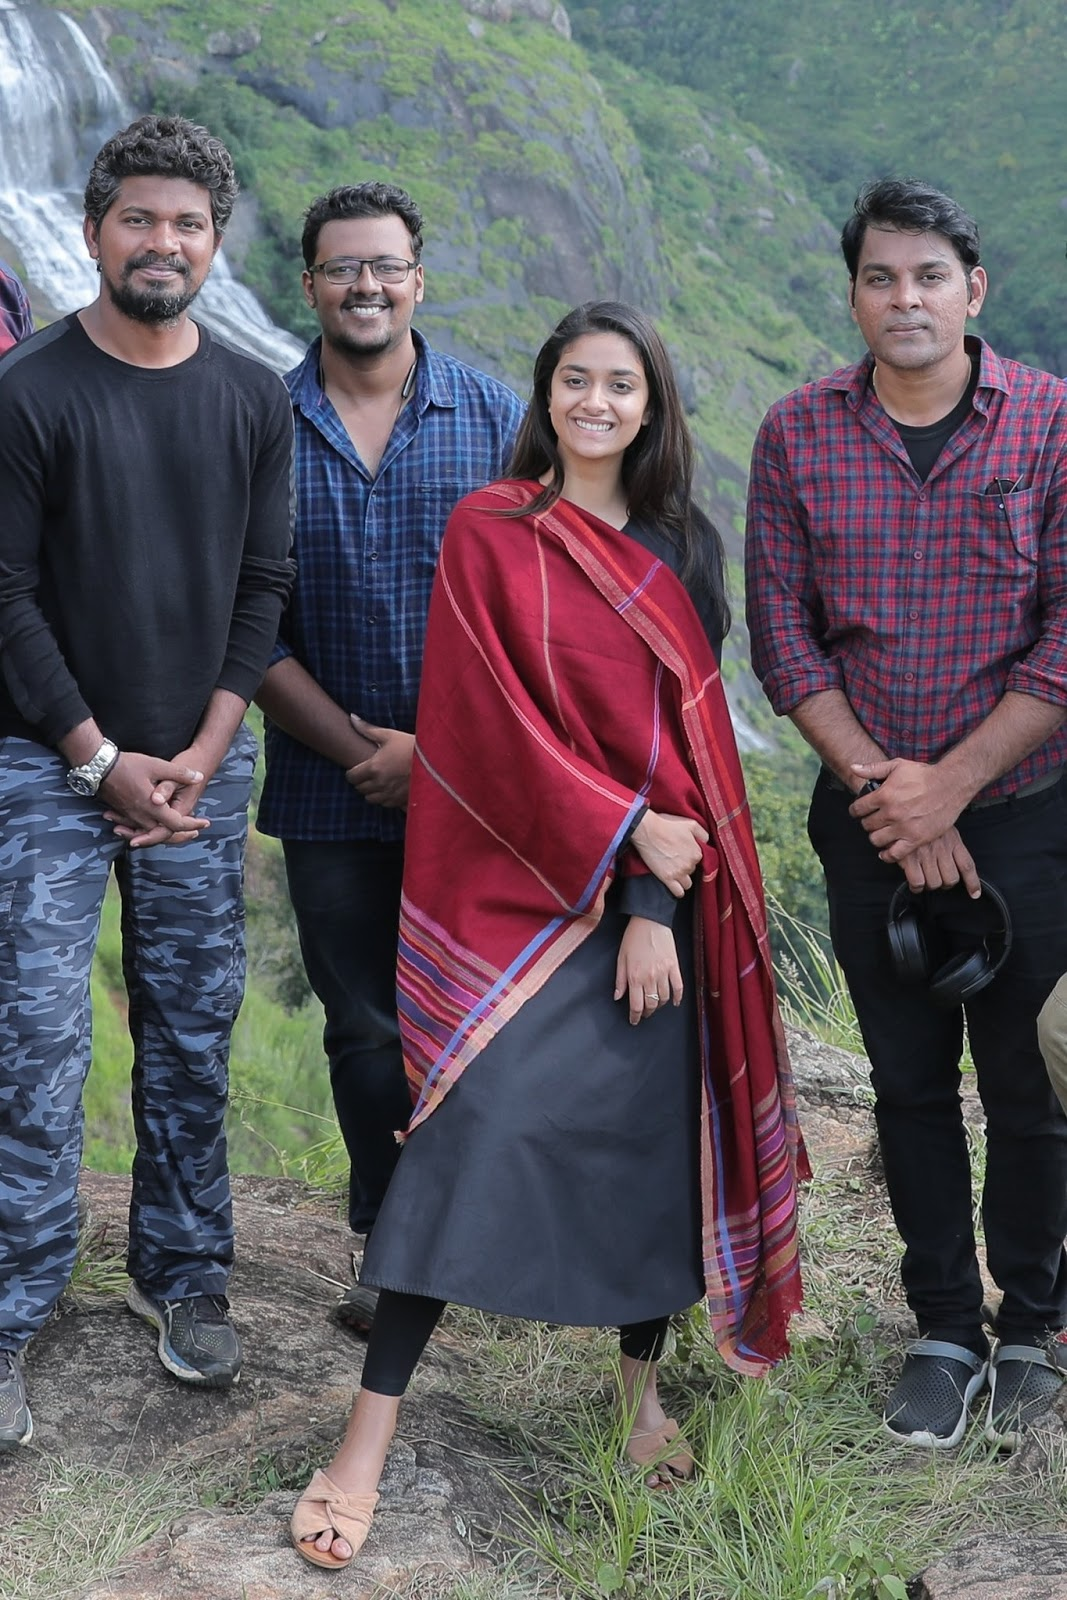 Mana Keerthy Suresh: Keerthy Suresh with Cute and Awesome Lovely Smile with Penguin Team While Shooting